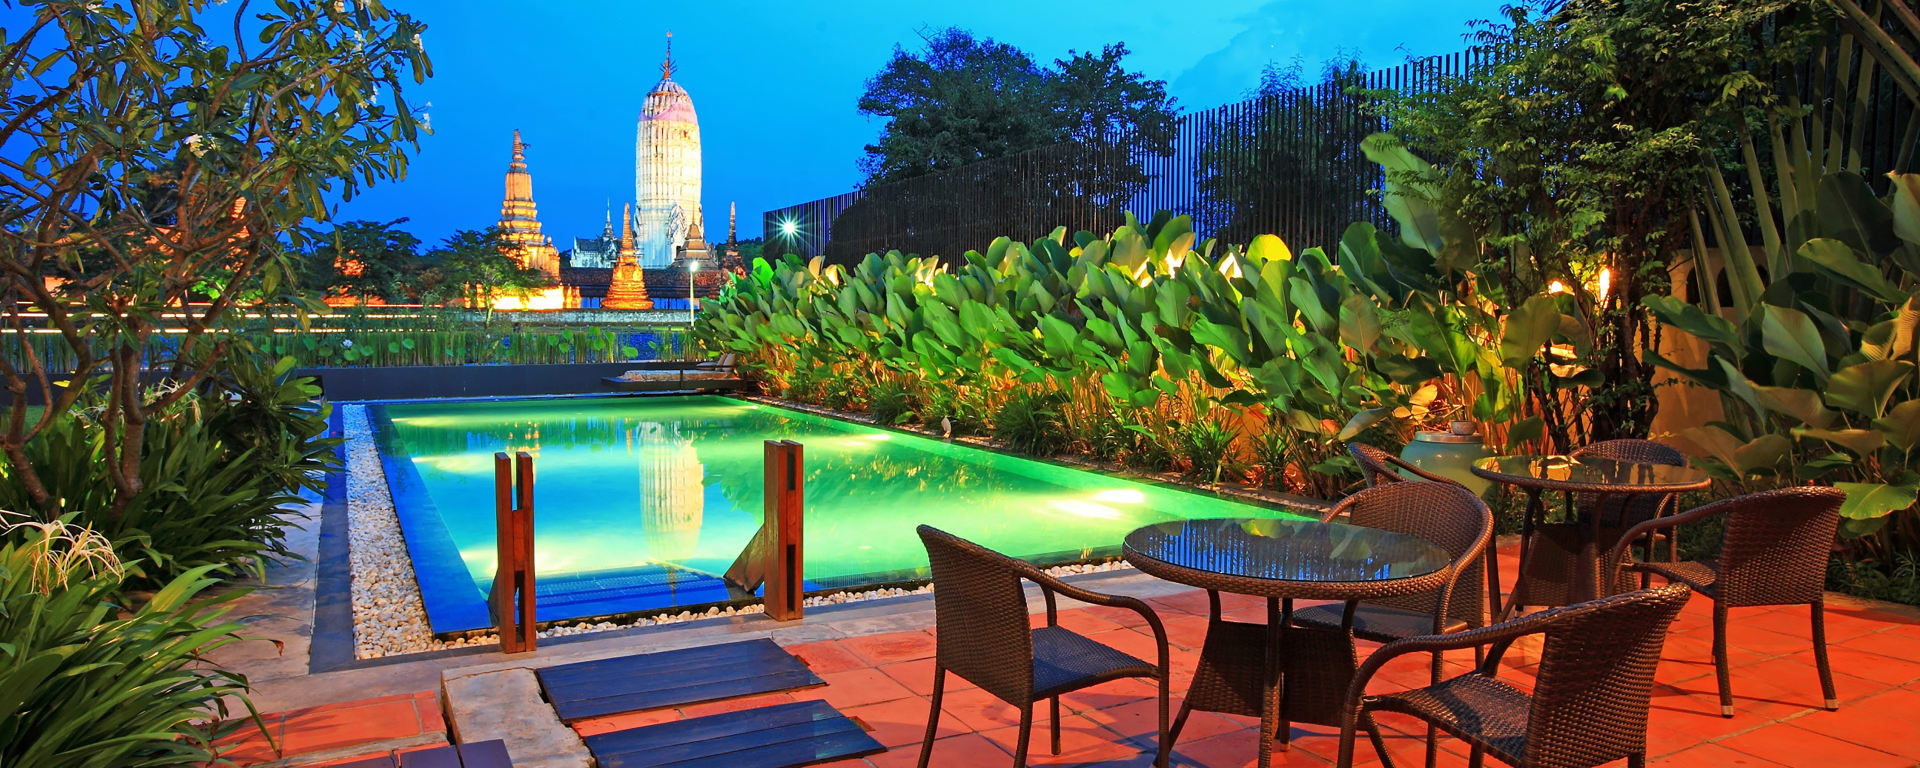 IUDIA on the River in Zentralthailand: Ayutthaya iuDia A Boutique Hotel On The River Pool